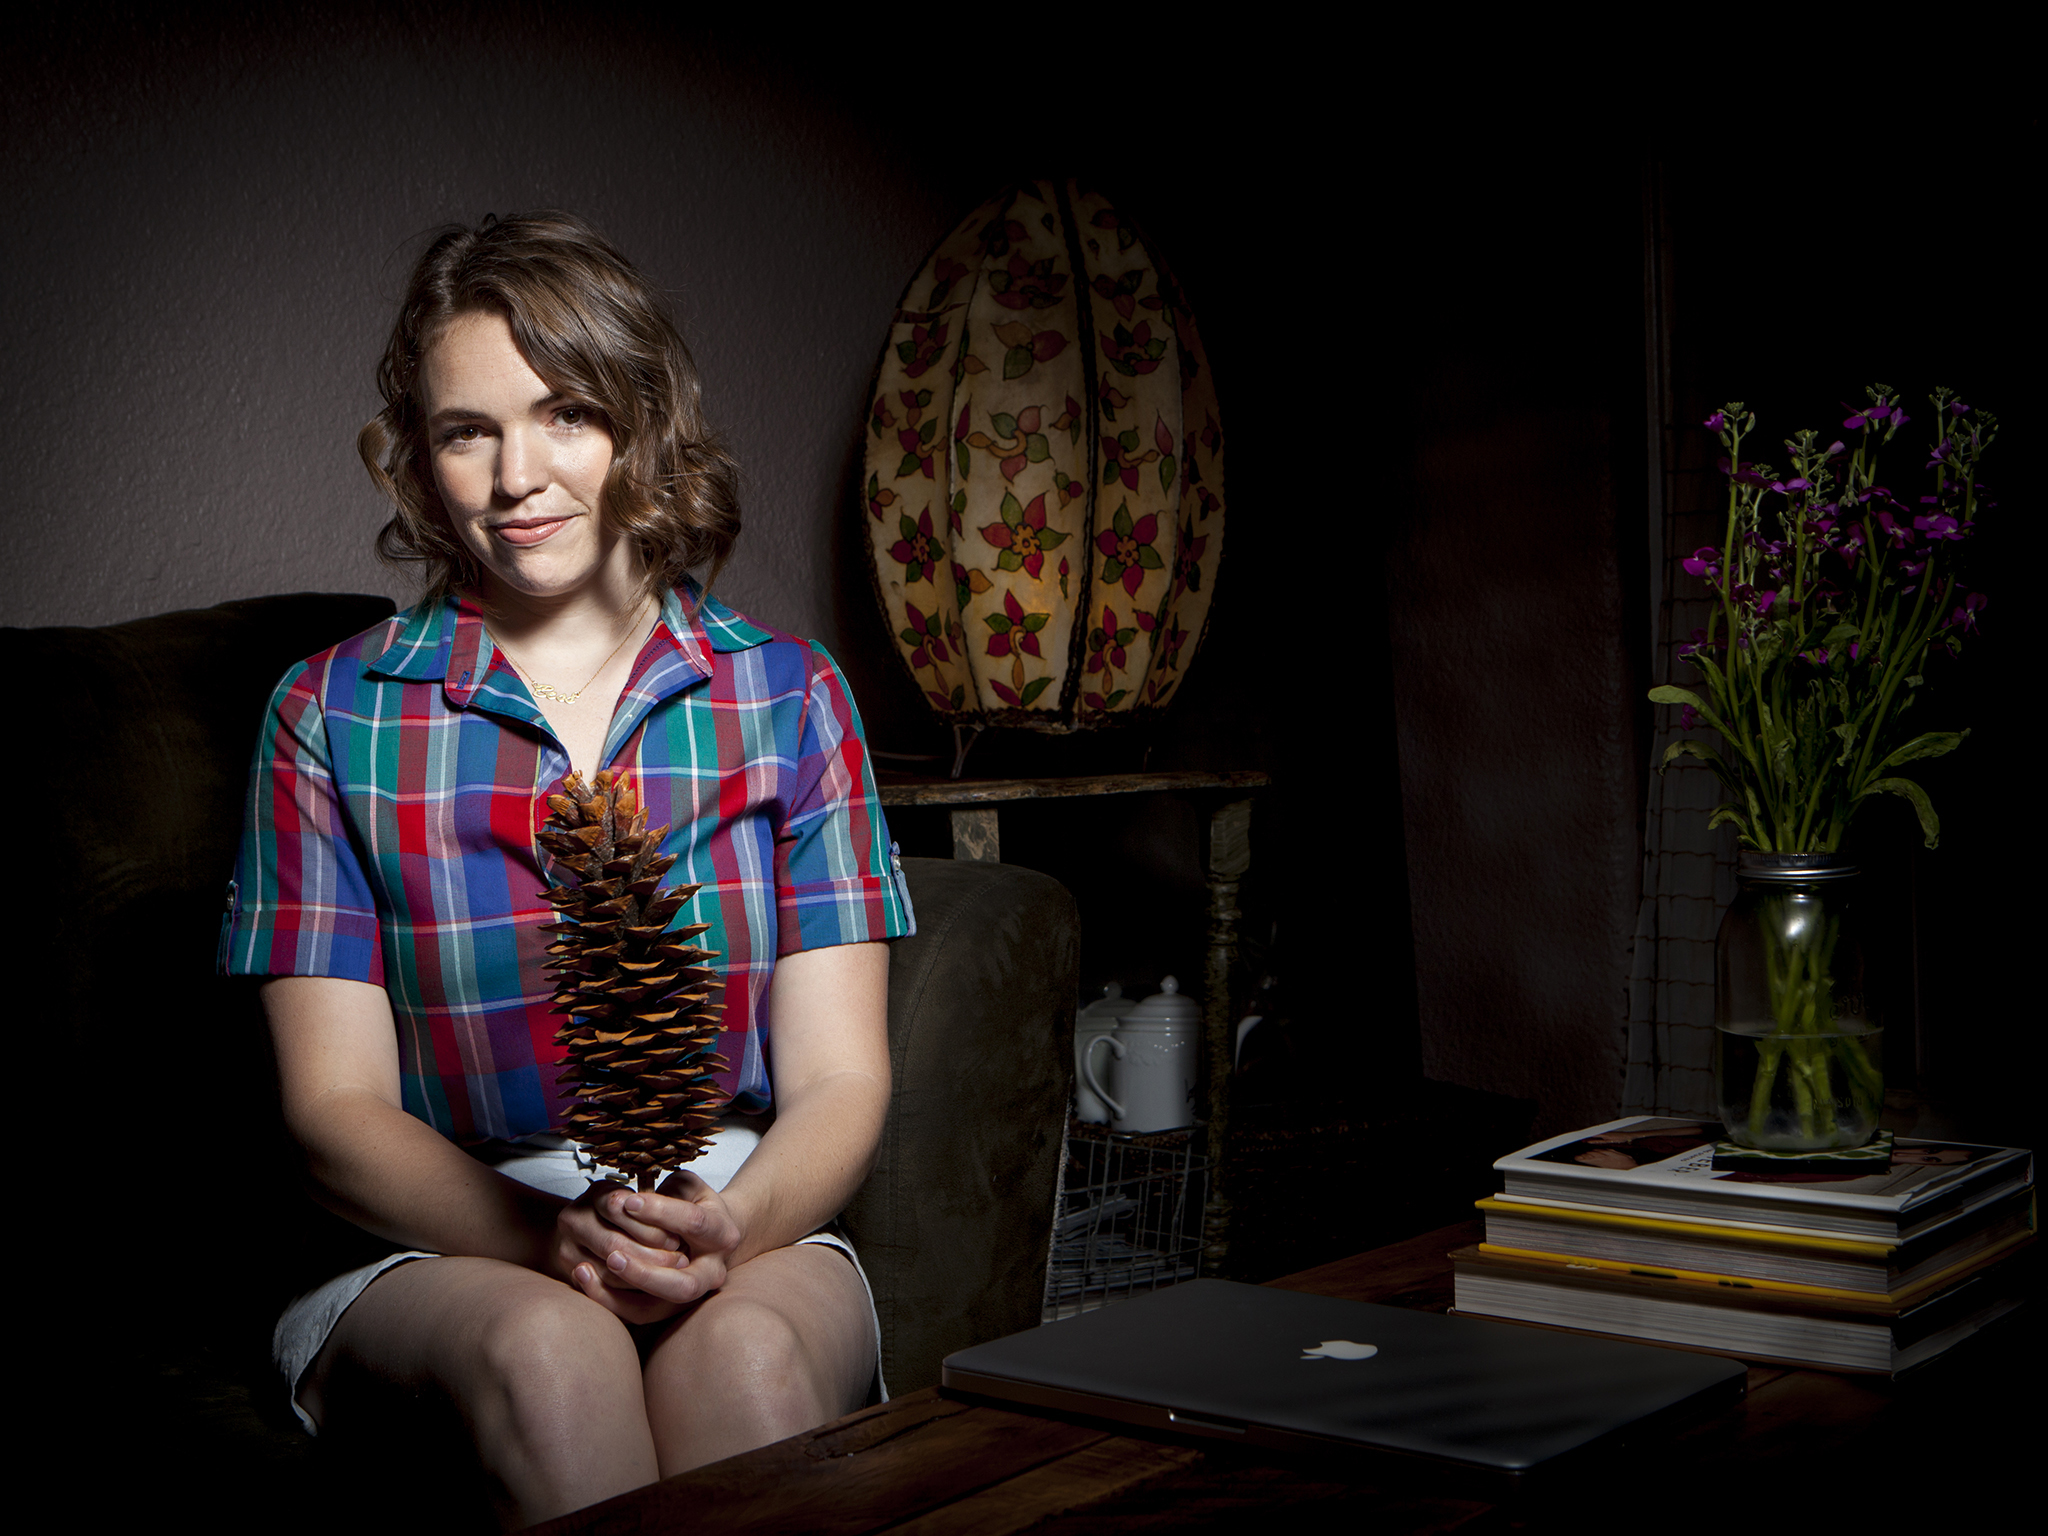 Beth Stelling, Comedians to watch in 2016